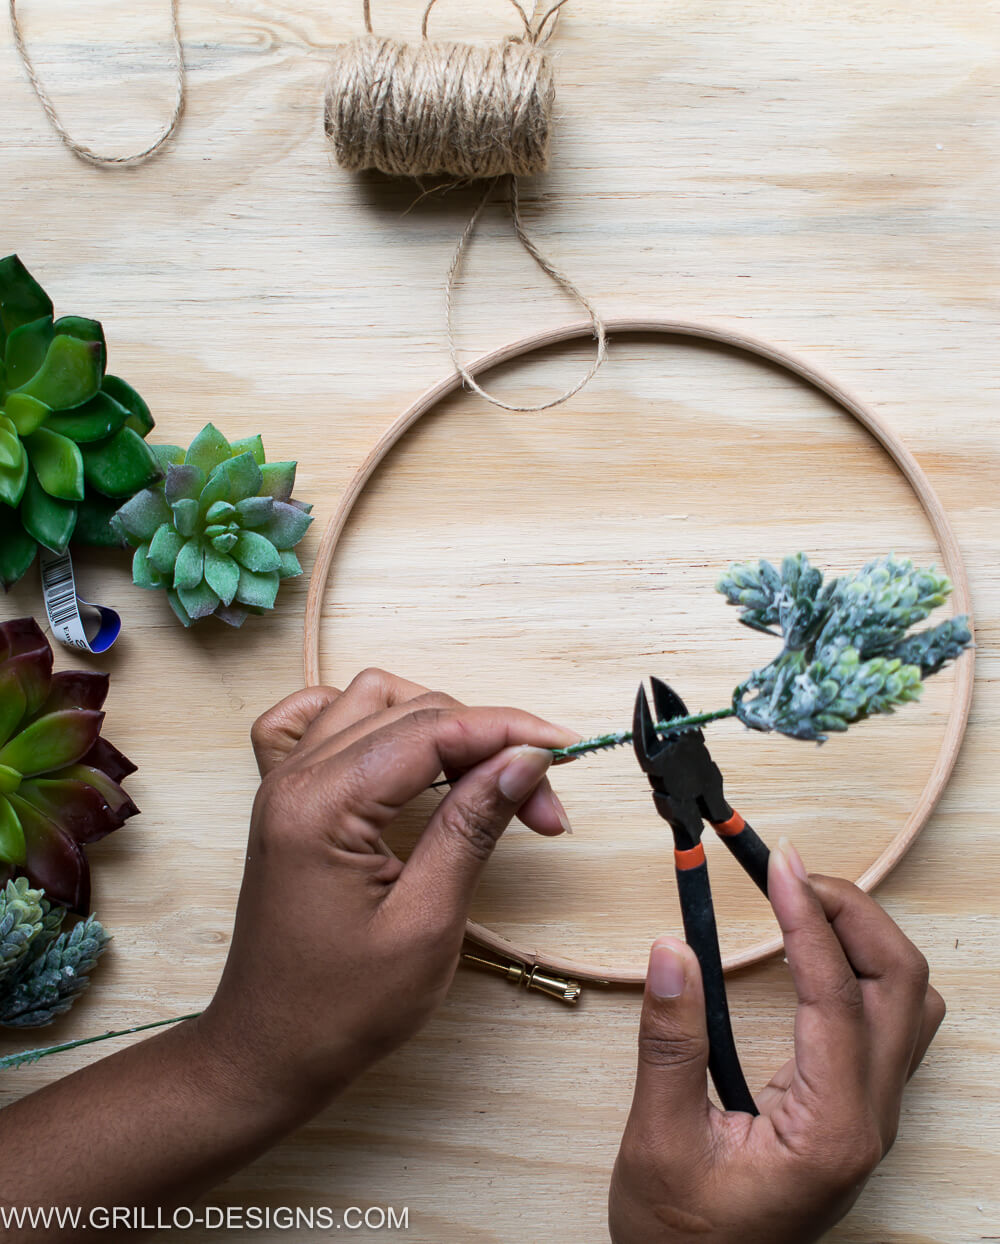 Using the cutters to cut the succulent ends